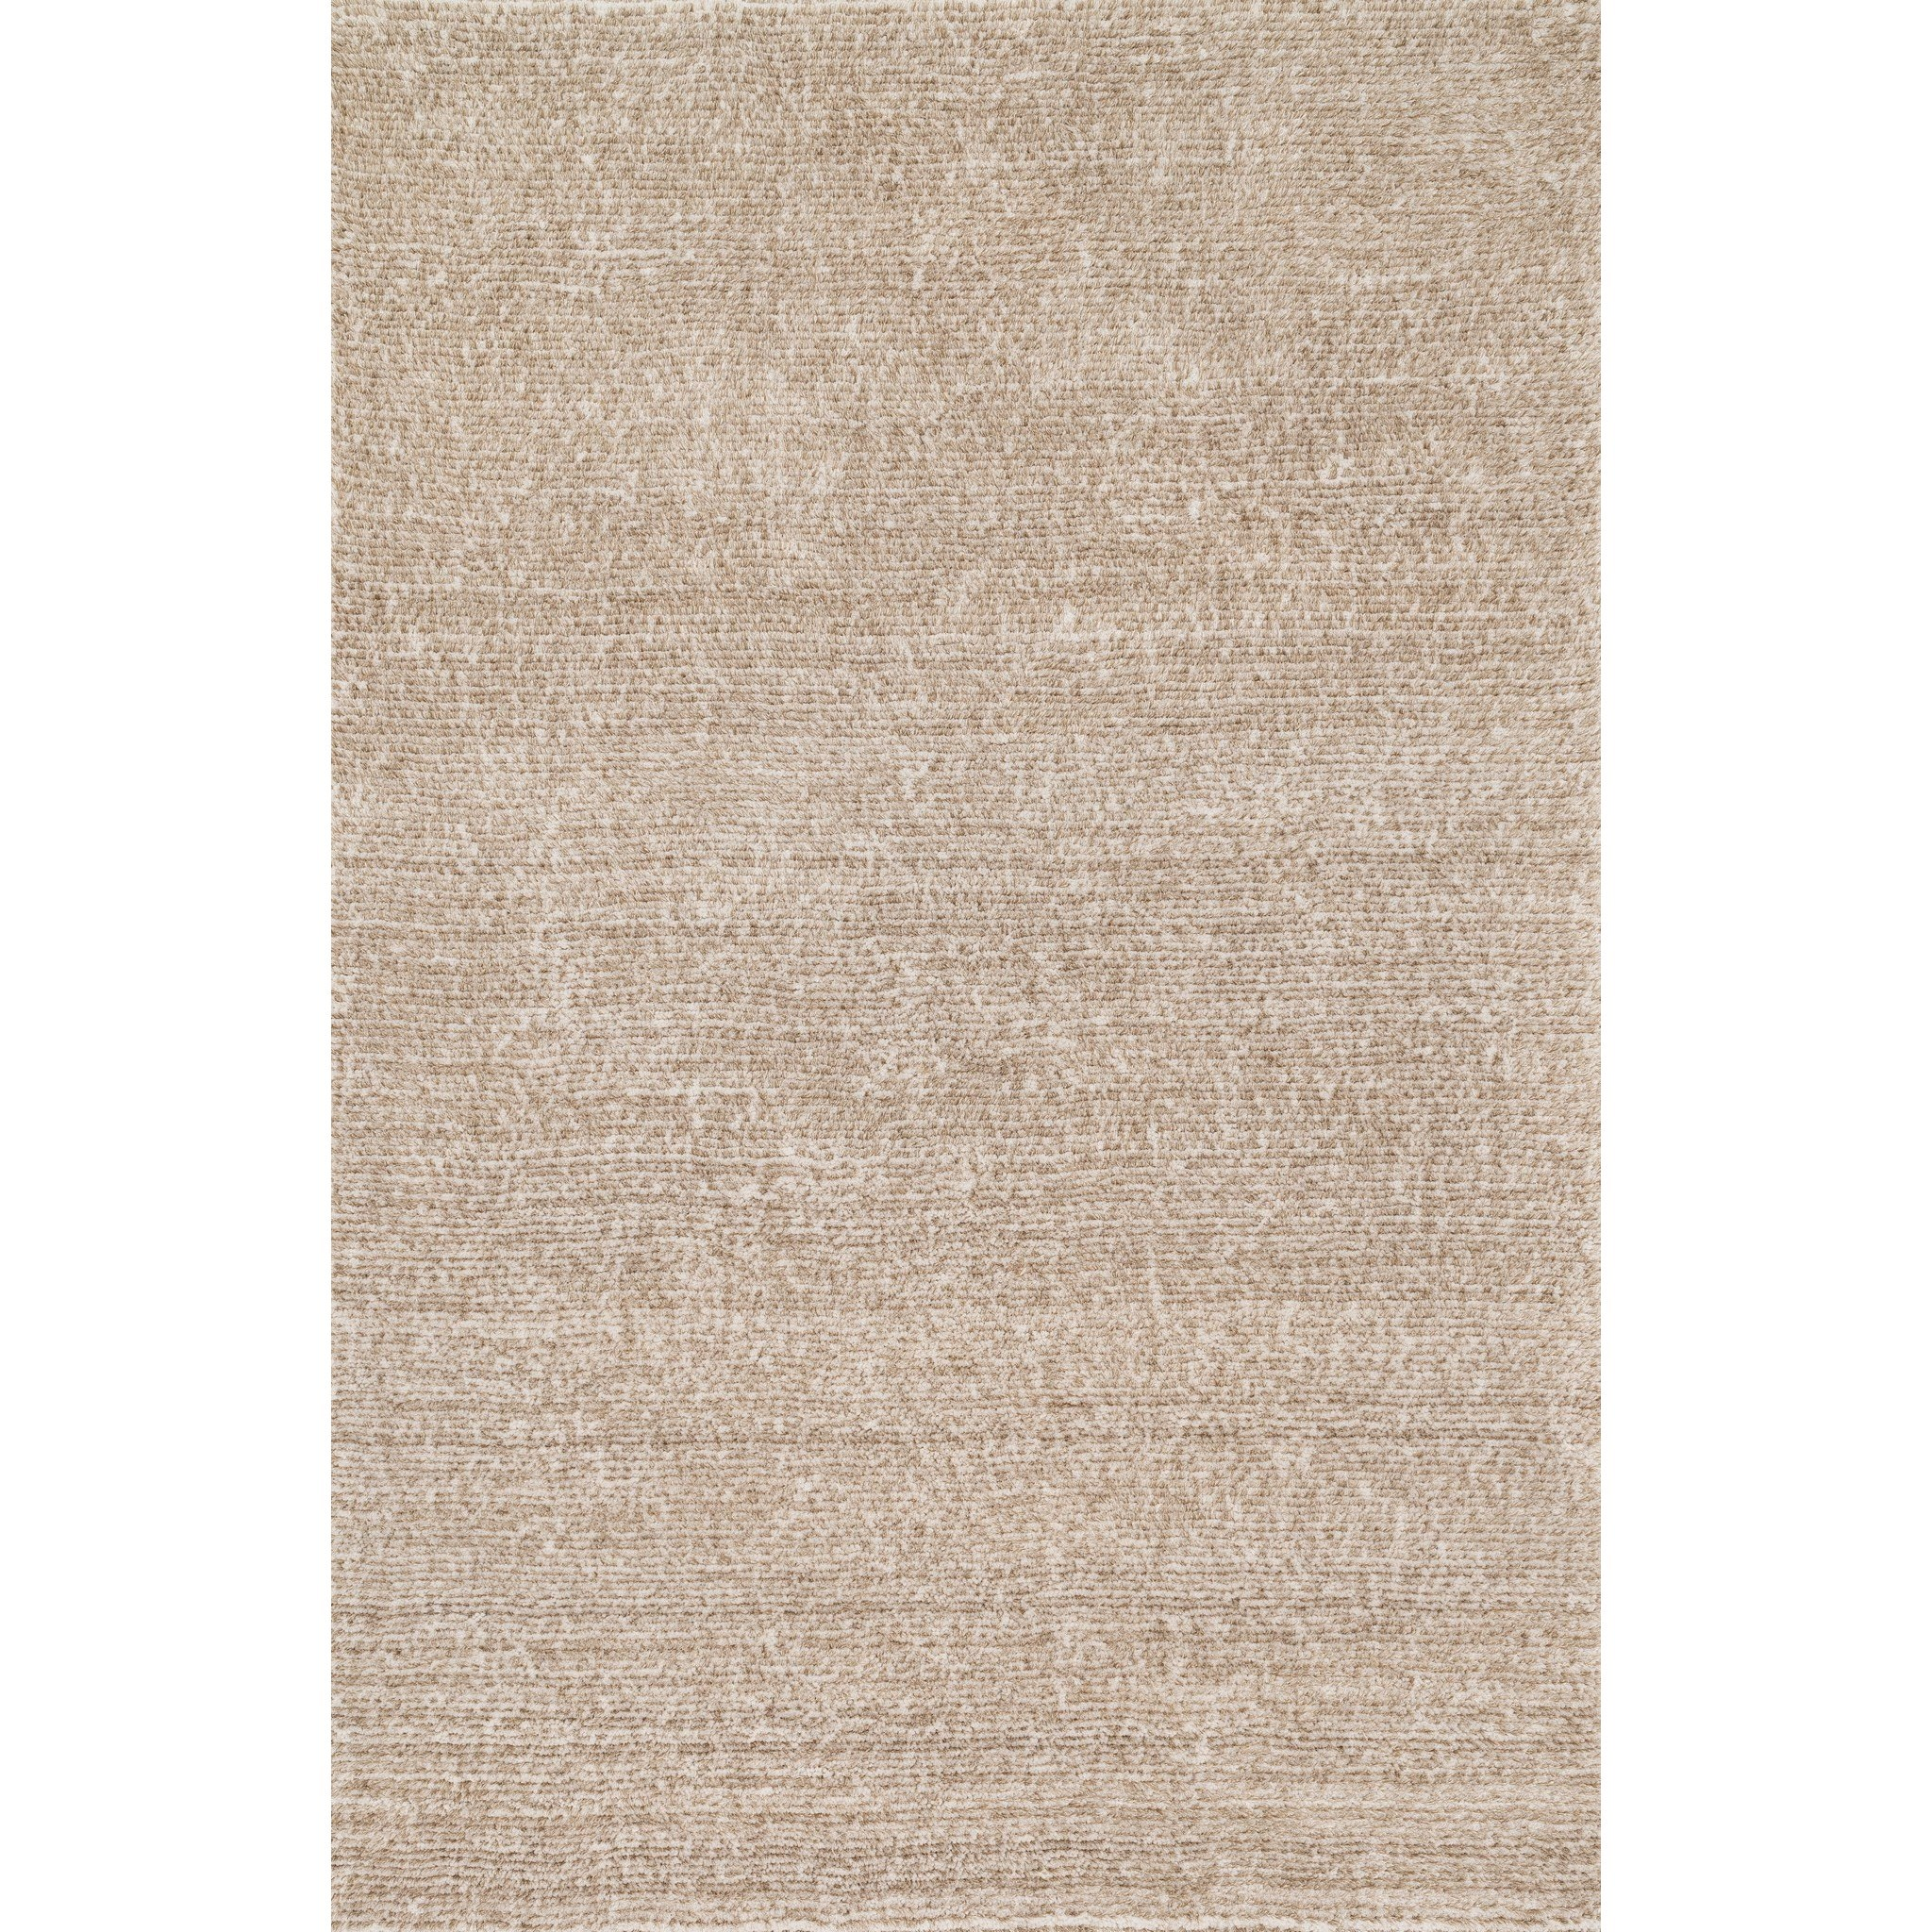 "Happy Shag 3'-6"" x 5'-6"" Area Rug by Loloi Rugs at Virginia Furniture Market"